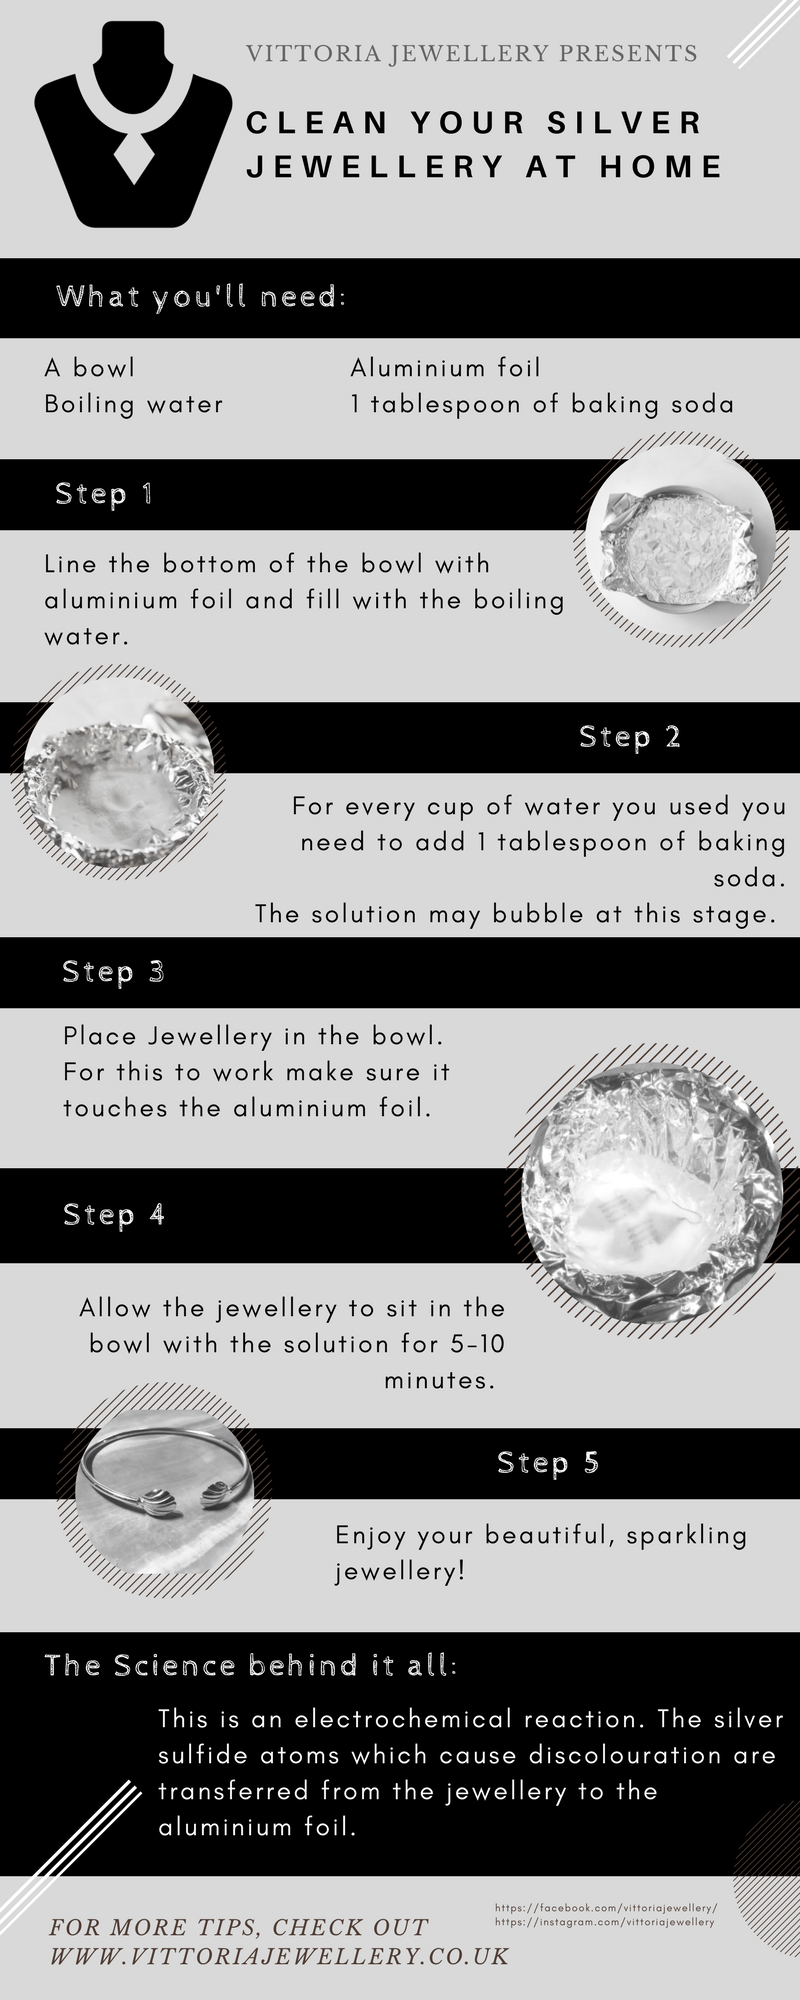 3a8230c4c13a How to clean silver jewellery (and other silver items) at home with just  baking soda